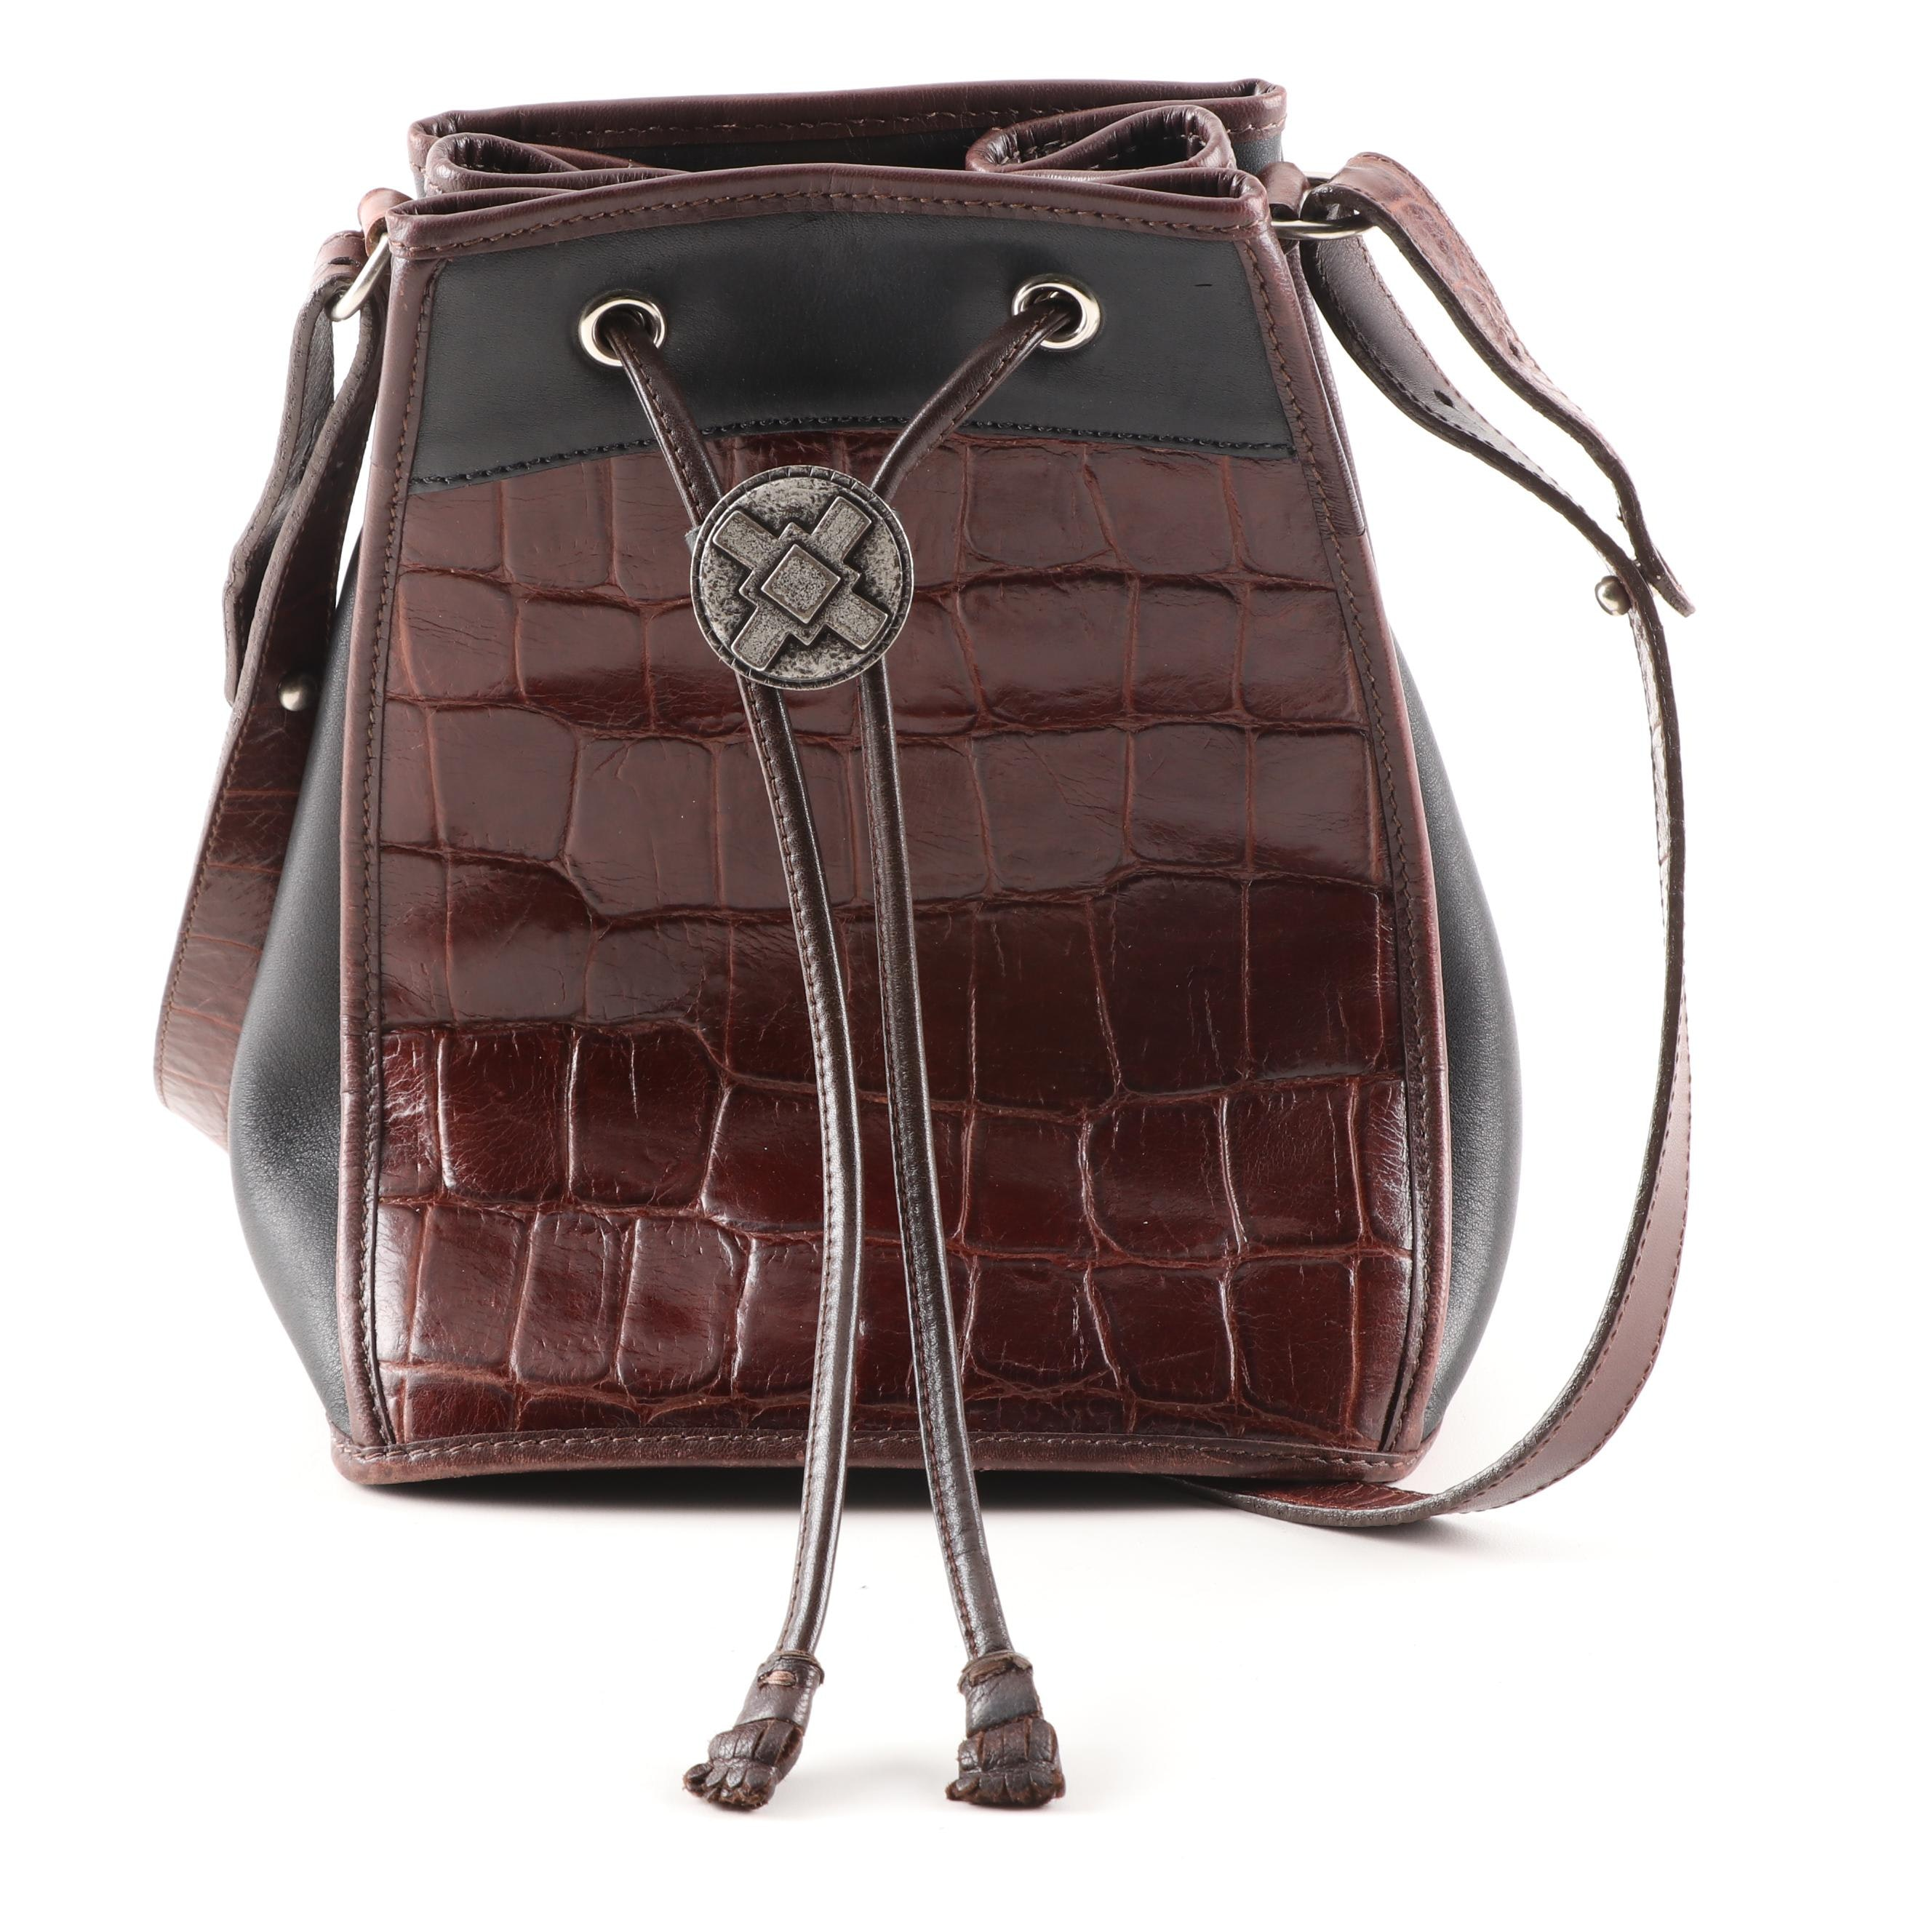 Brahmin Embossed Leather Shoulder Bag